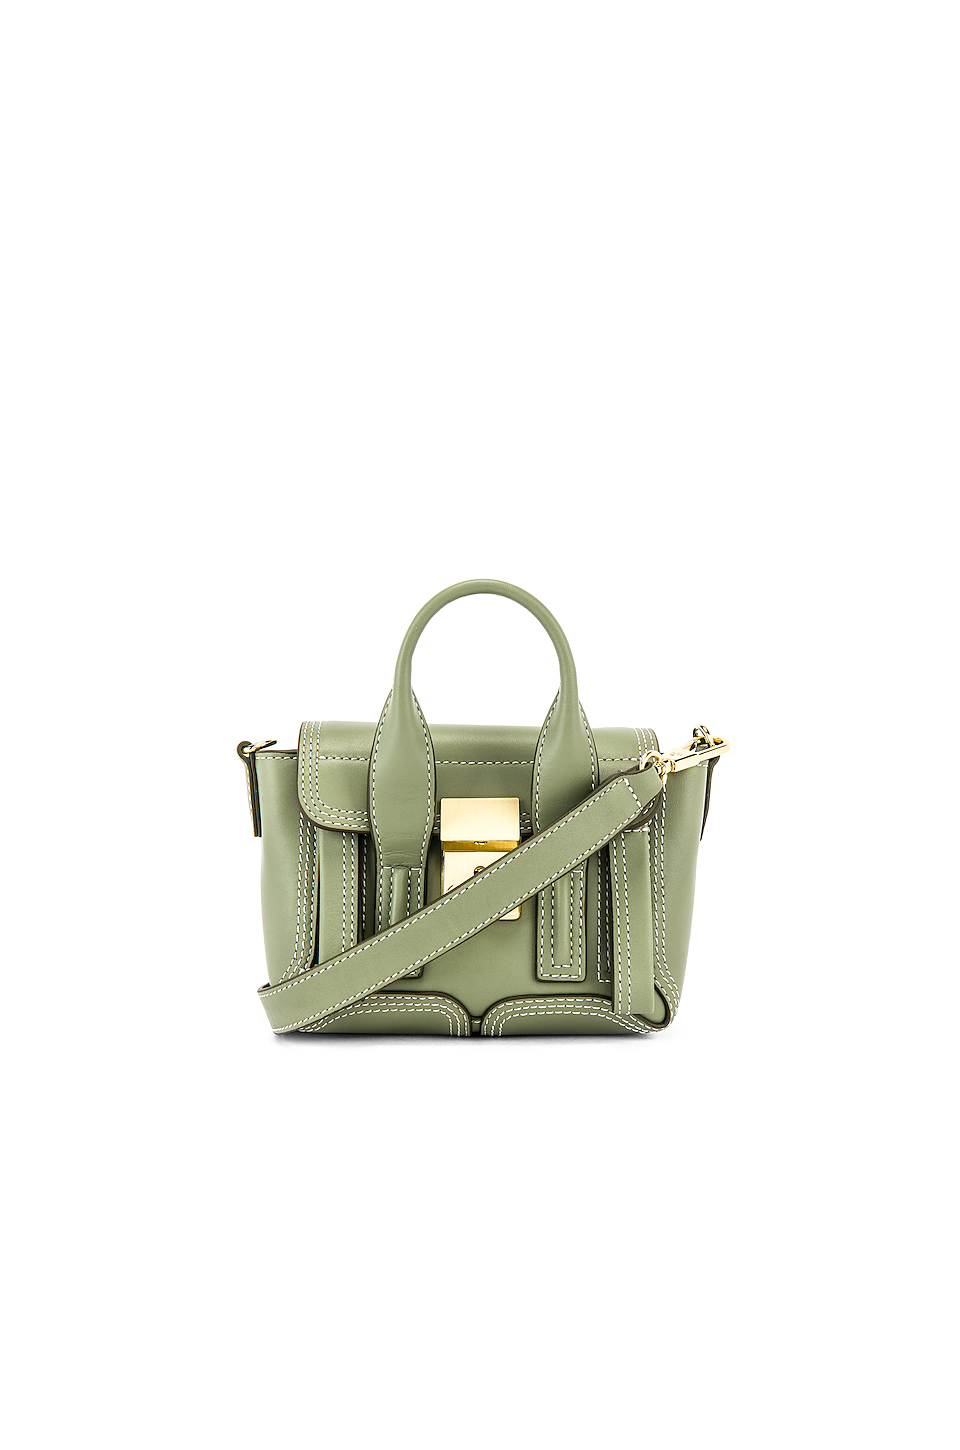 7301d26c8ea9 Buy Original 3.1 phillip lim Pashli Nano Satchel at Indonesia